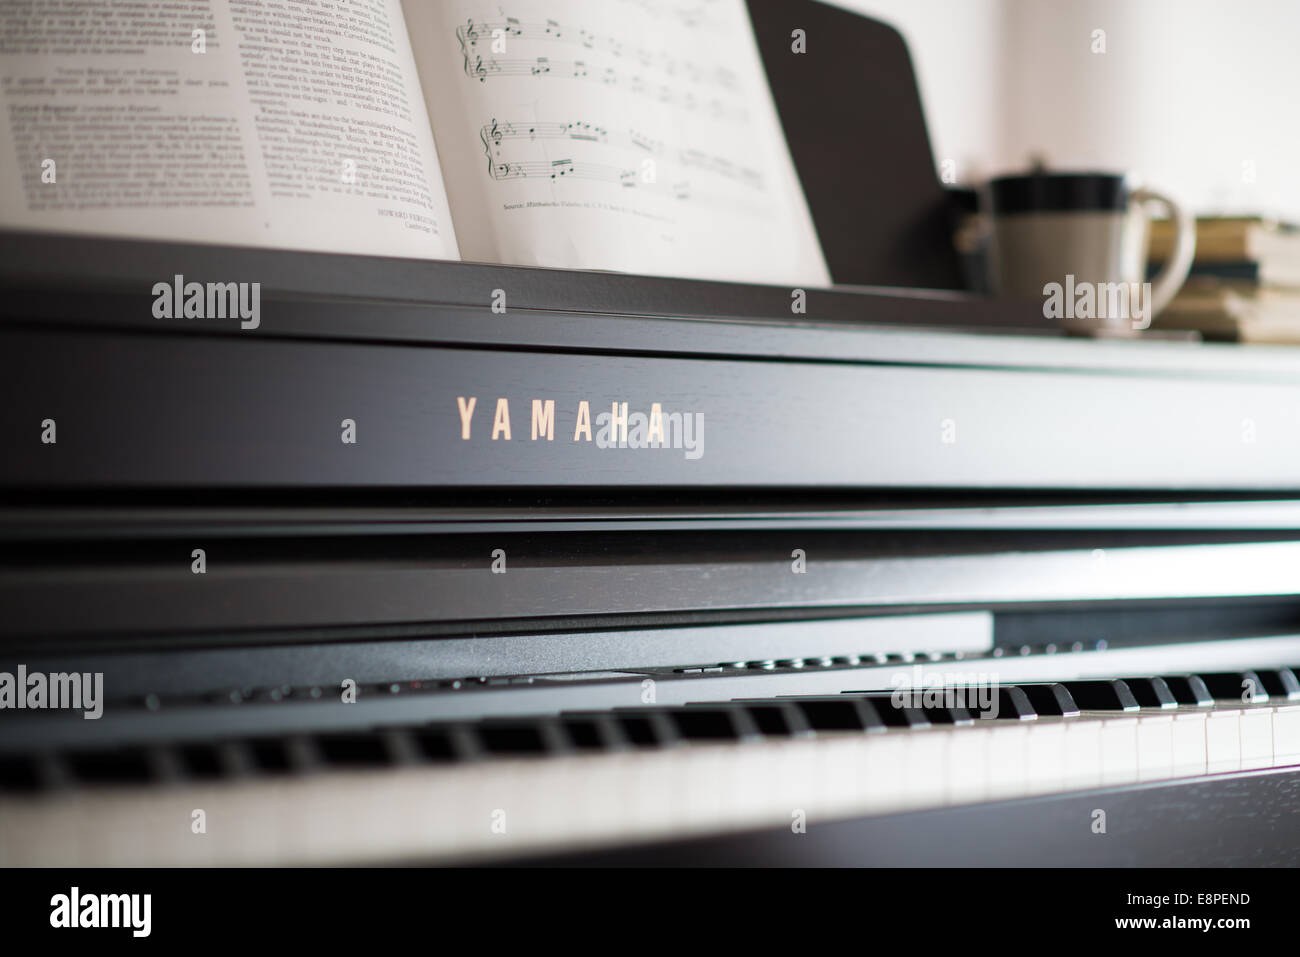 Learning to play Piano - Stock Image